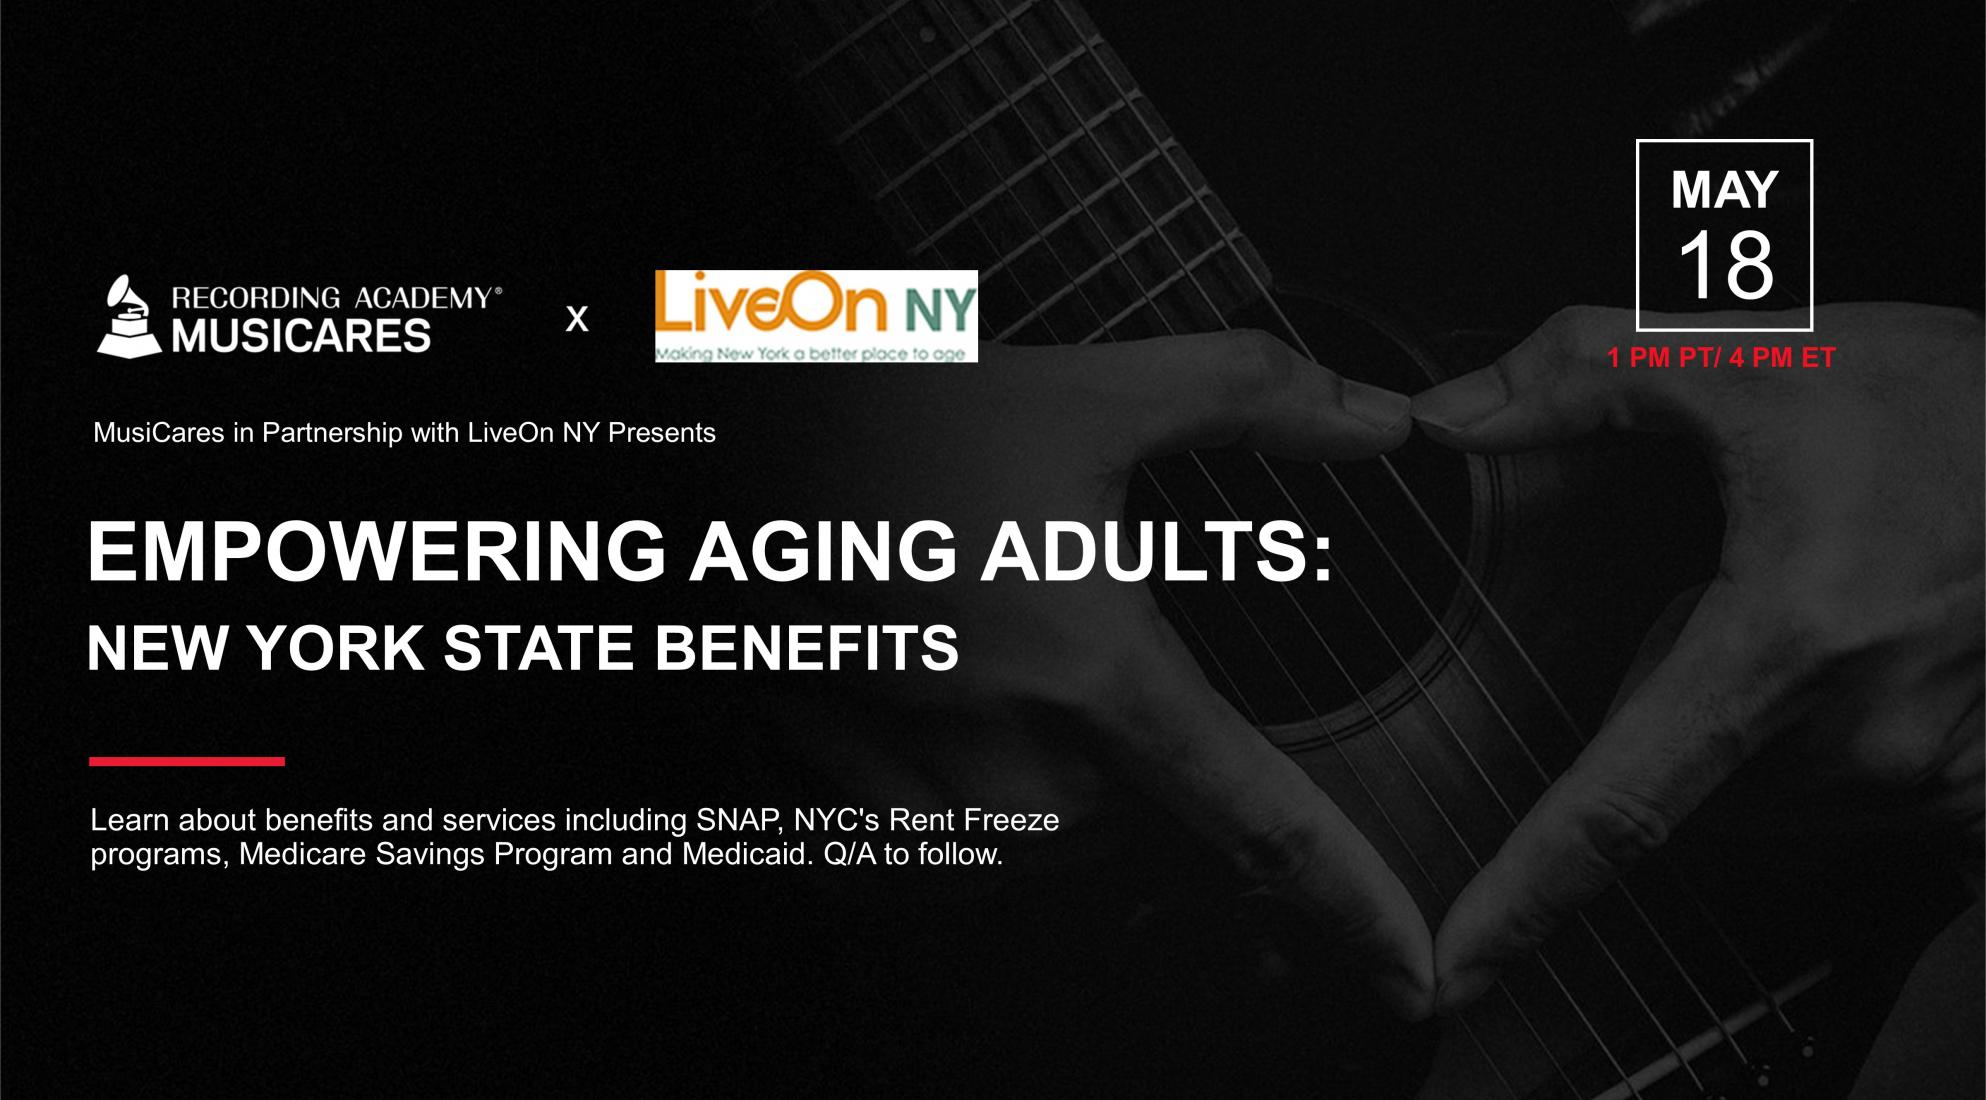 MusiCares in Partnership with LiveOn NY Presents Empowering Aging Adults: New York State Benefits Graphic